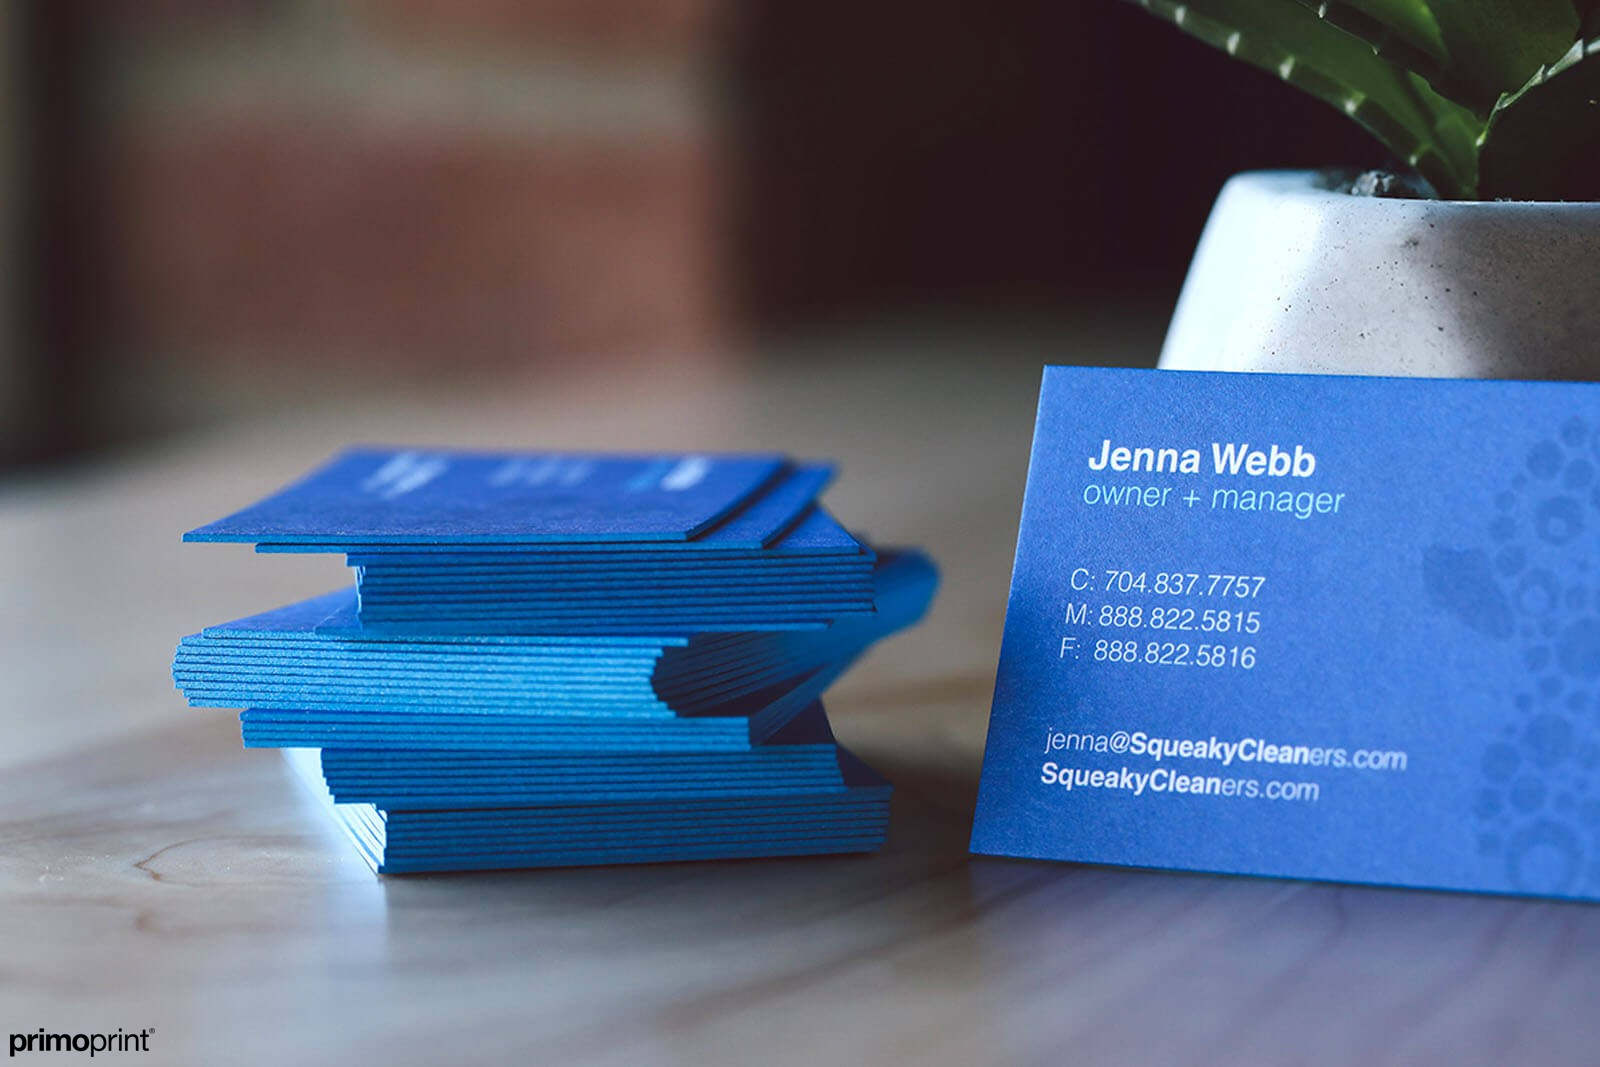 Printed on 32PT thick uncoated card stock. Designed in-house by Primoprint graphic designer.